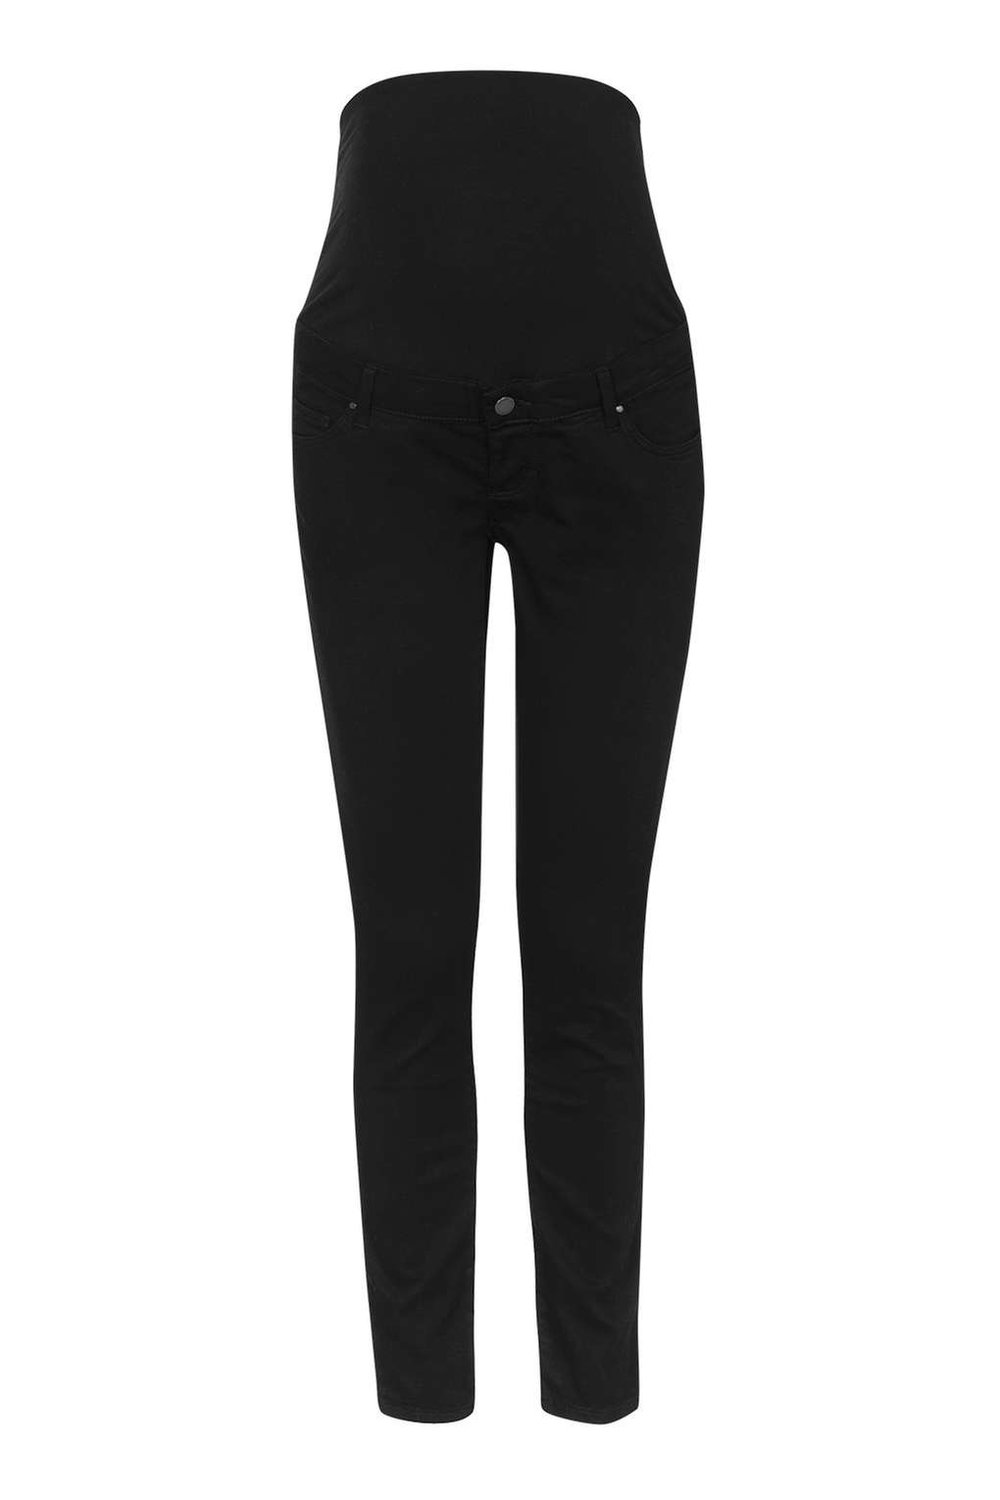 Maternity Over-the-Bump Leigh jeans- Topshop £40